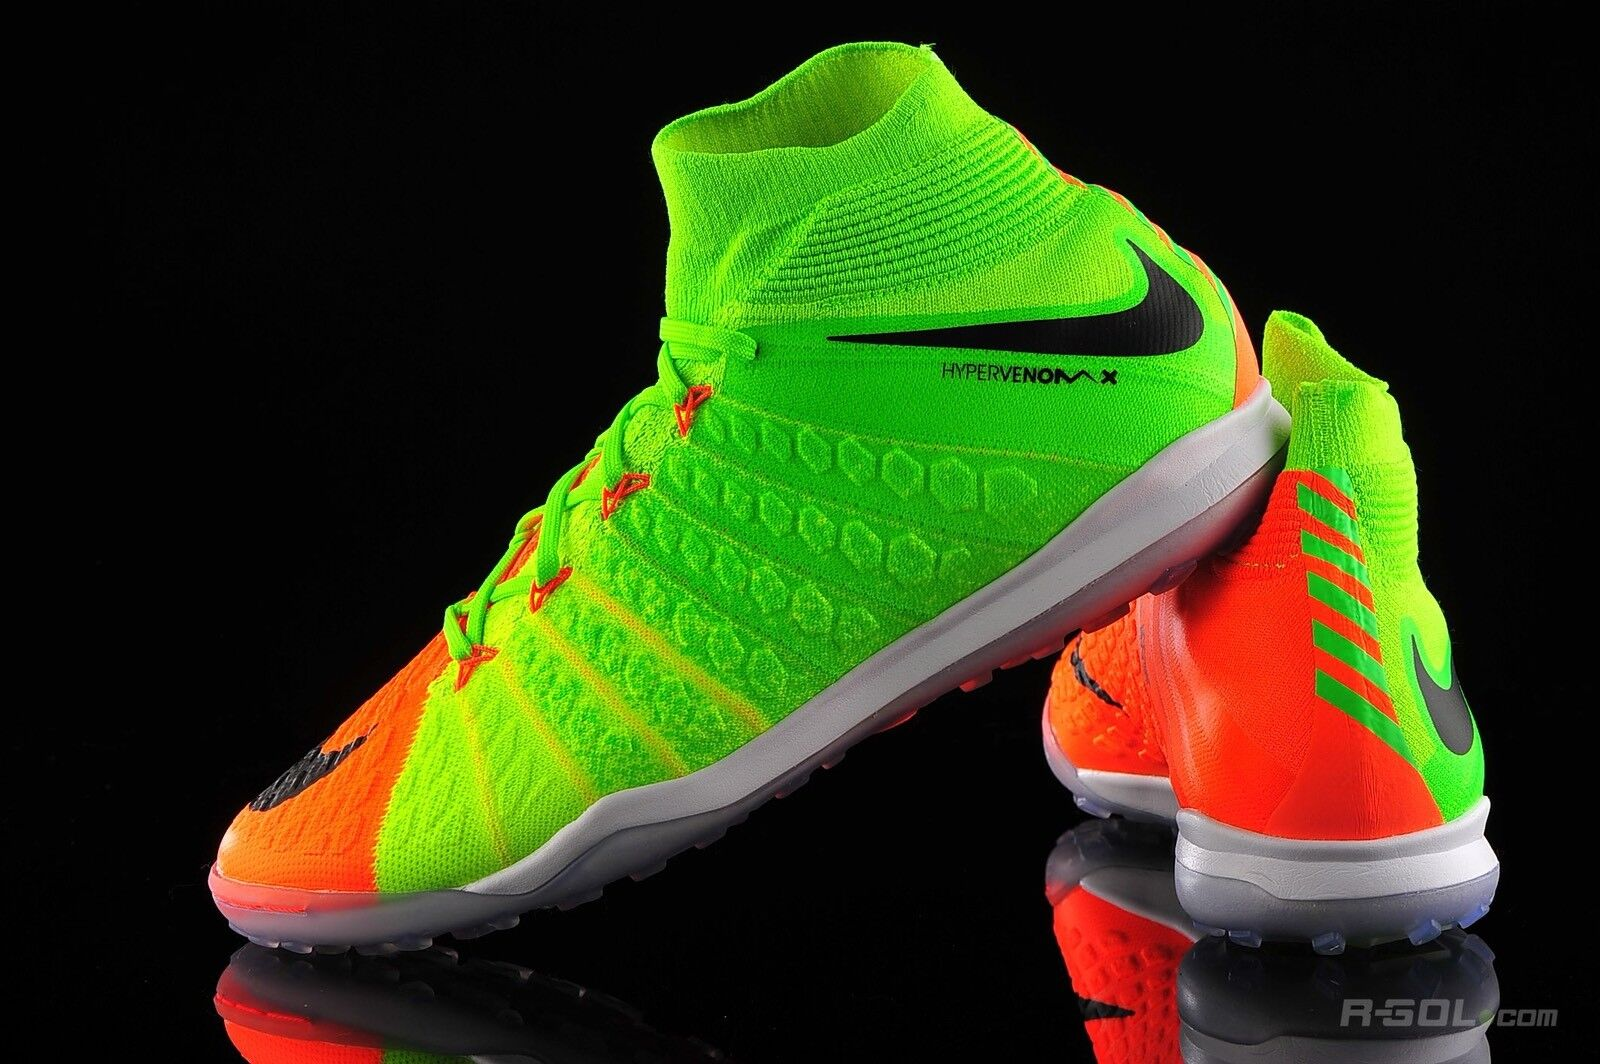 9fdd1818ea Nike II DF TF 10 Euro 45 Electric Green Hyper orange UK HypervenomX ...